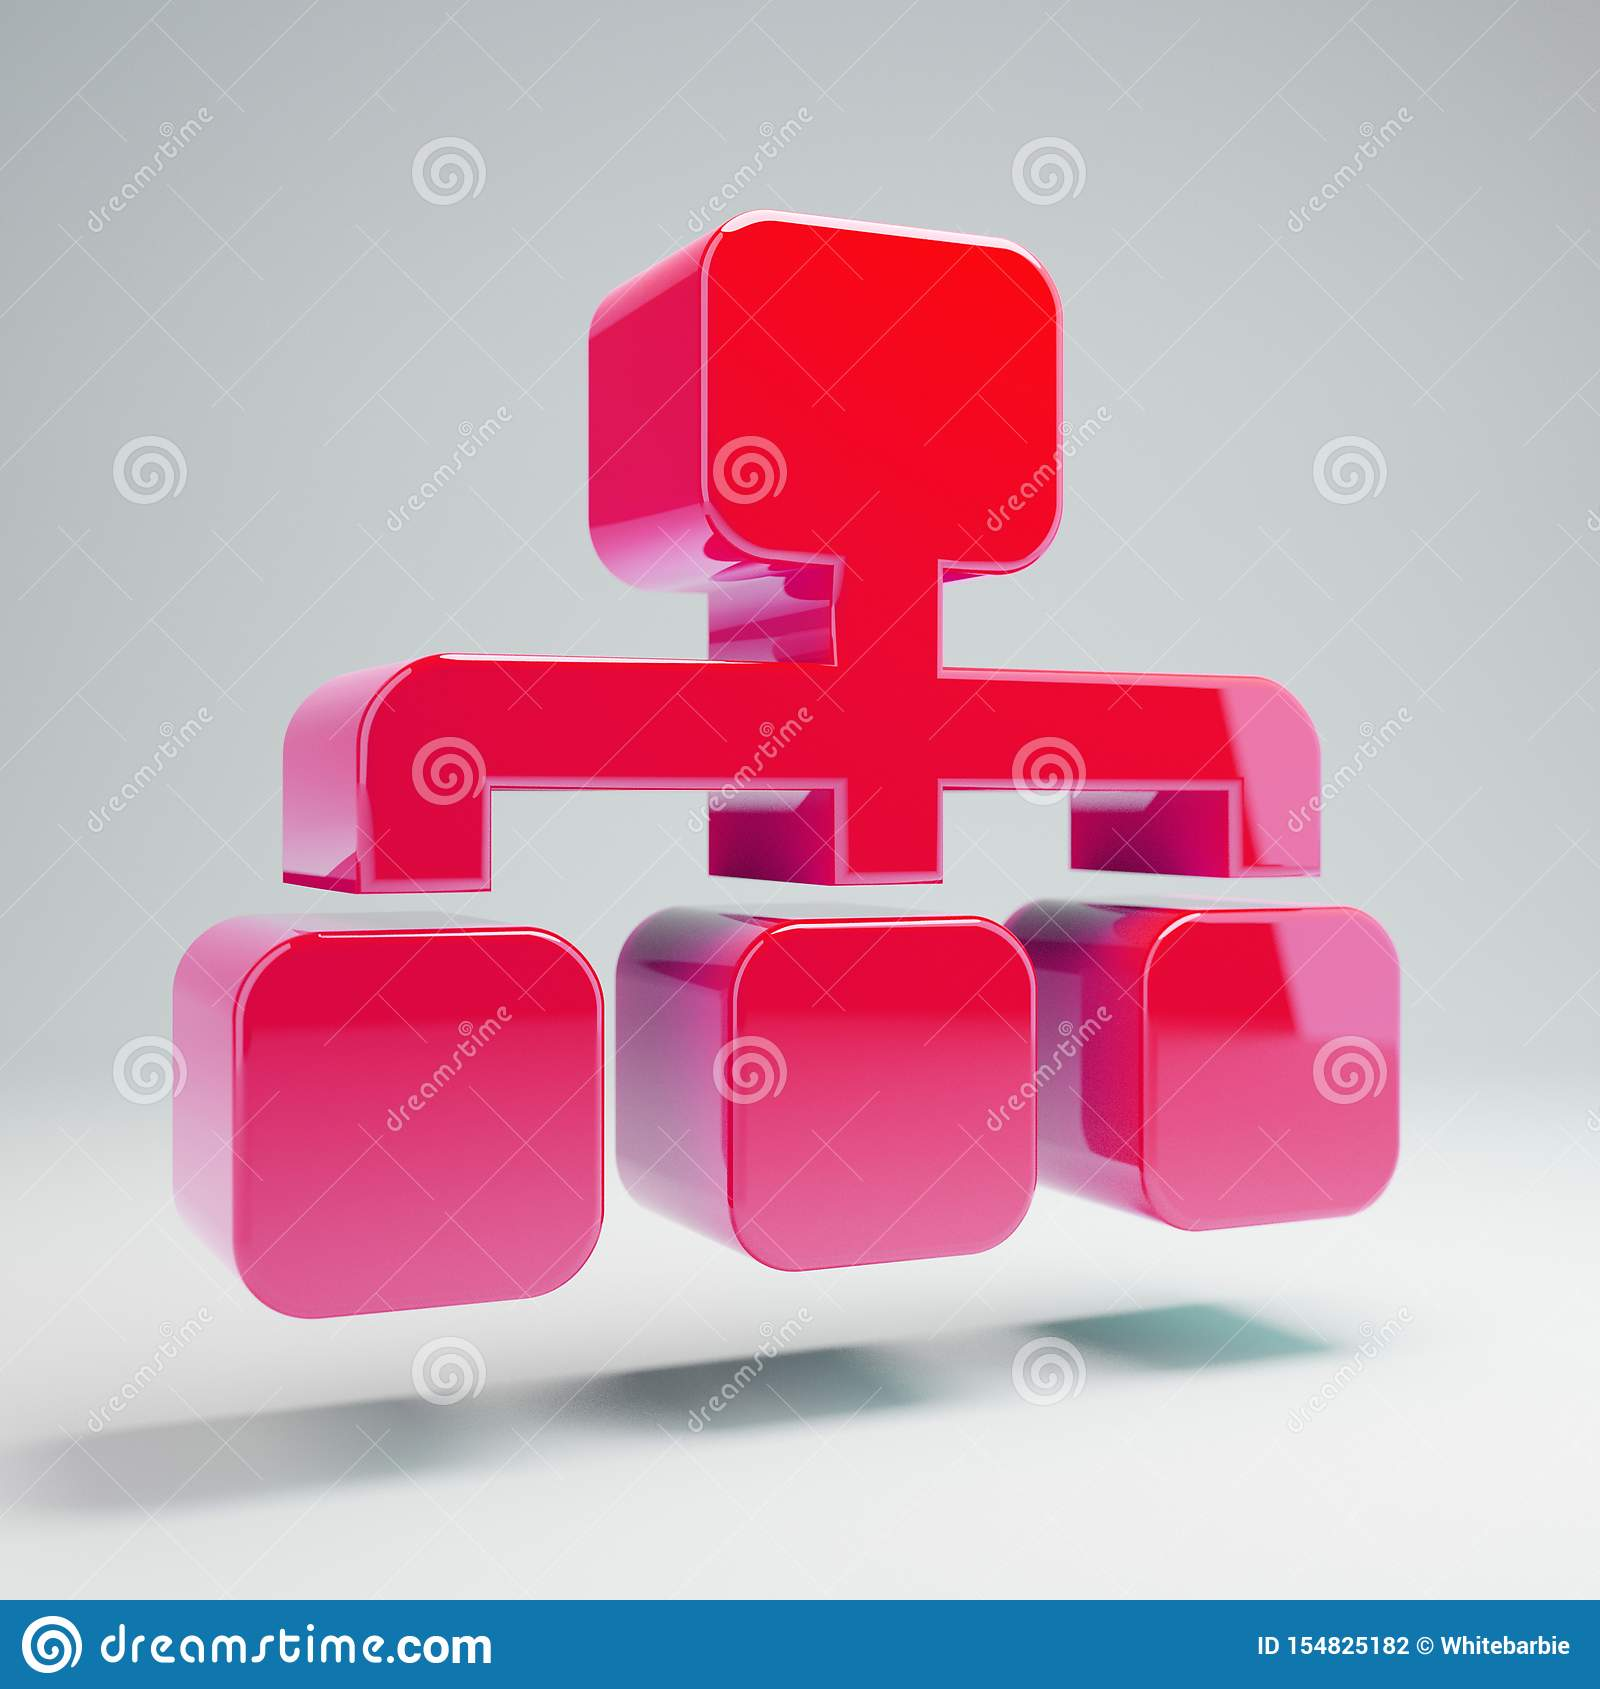 Volumetric glossy hot pink Sitemap icon isolated on white background